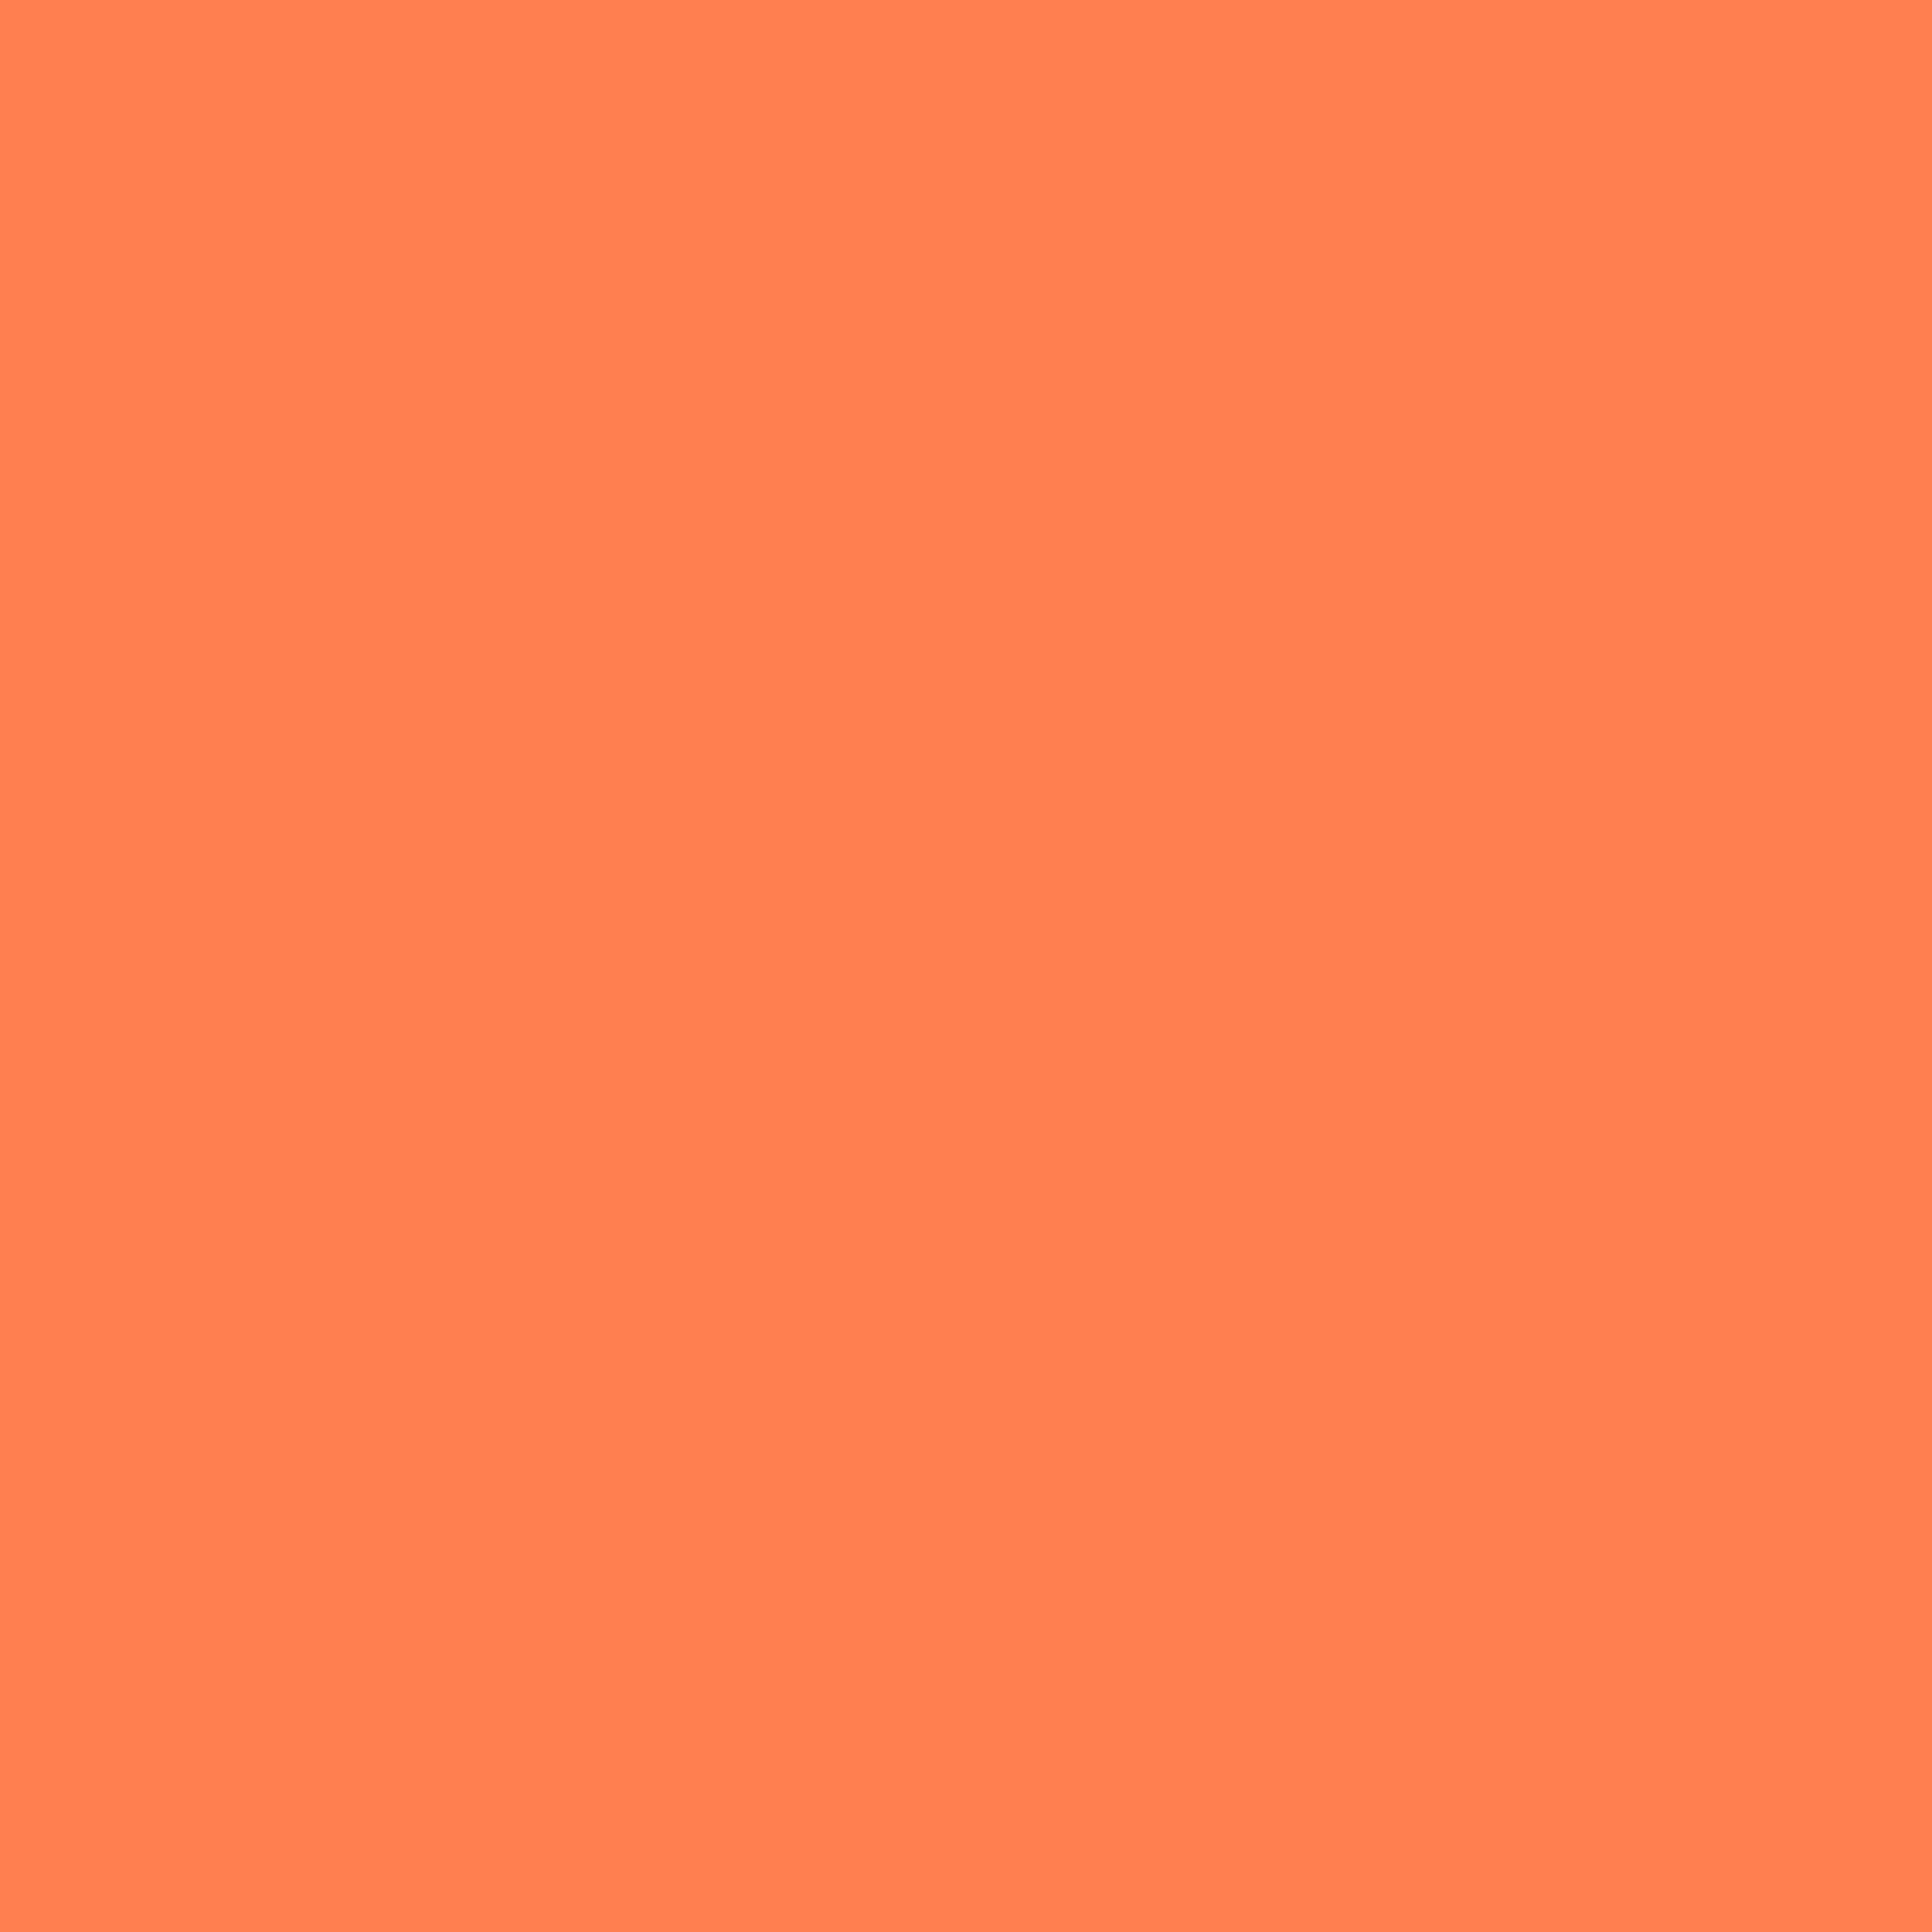 3600x3600 Coral Solid Color Background